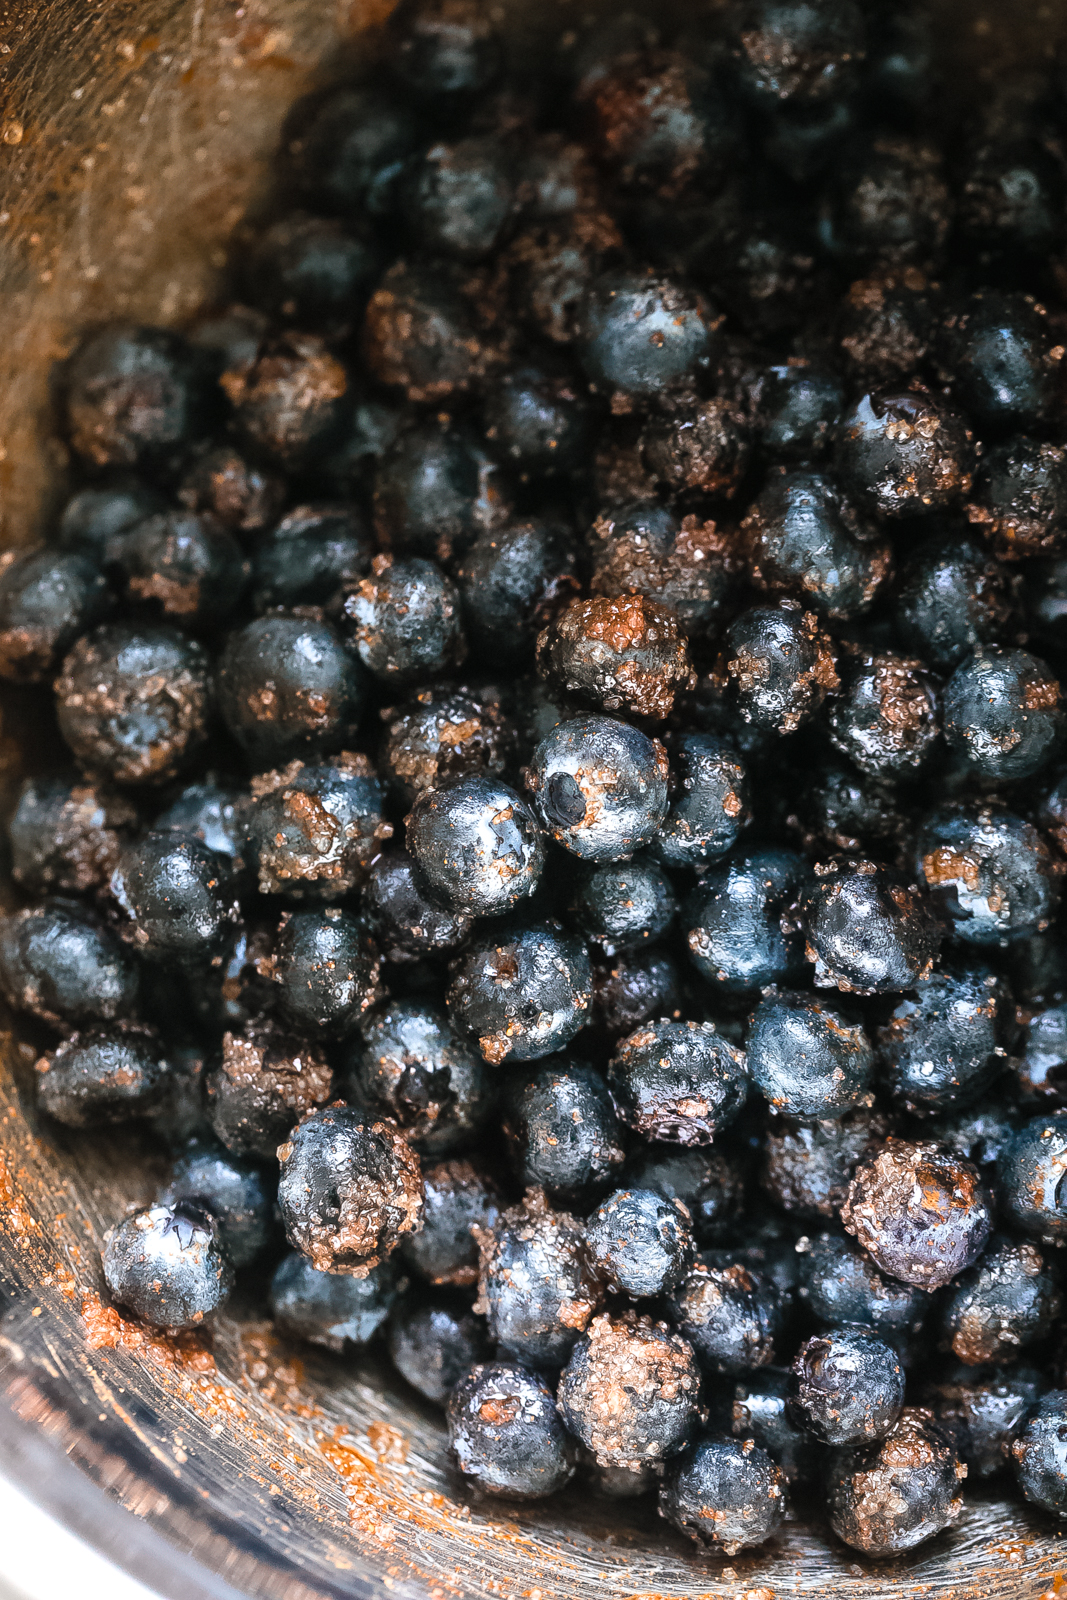 stainless steel bowl with blueberries tossed in sugar and cinnamon mixture